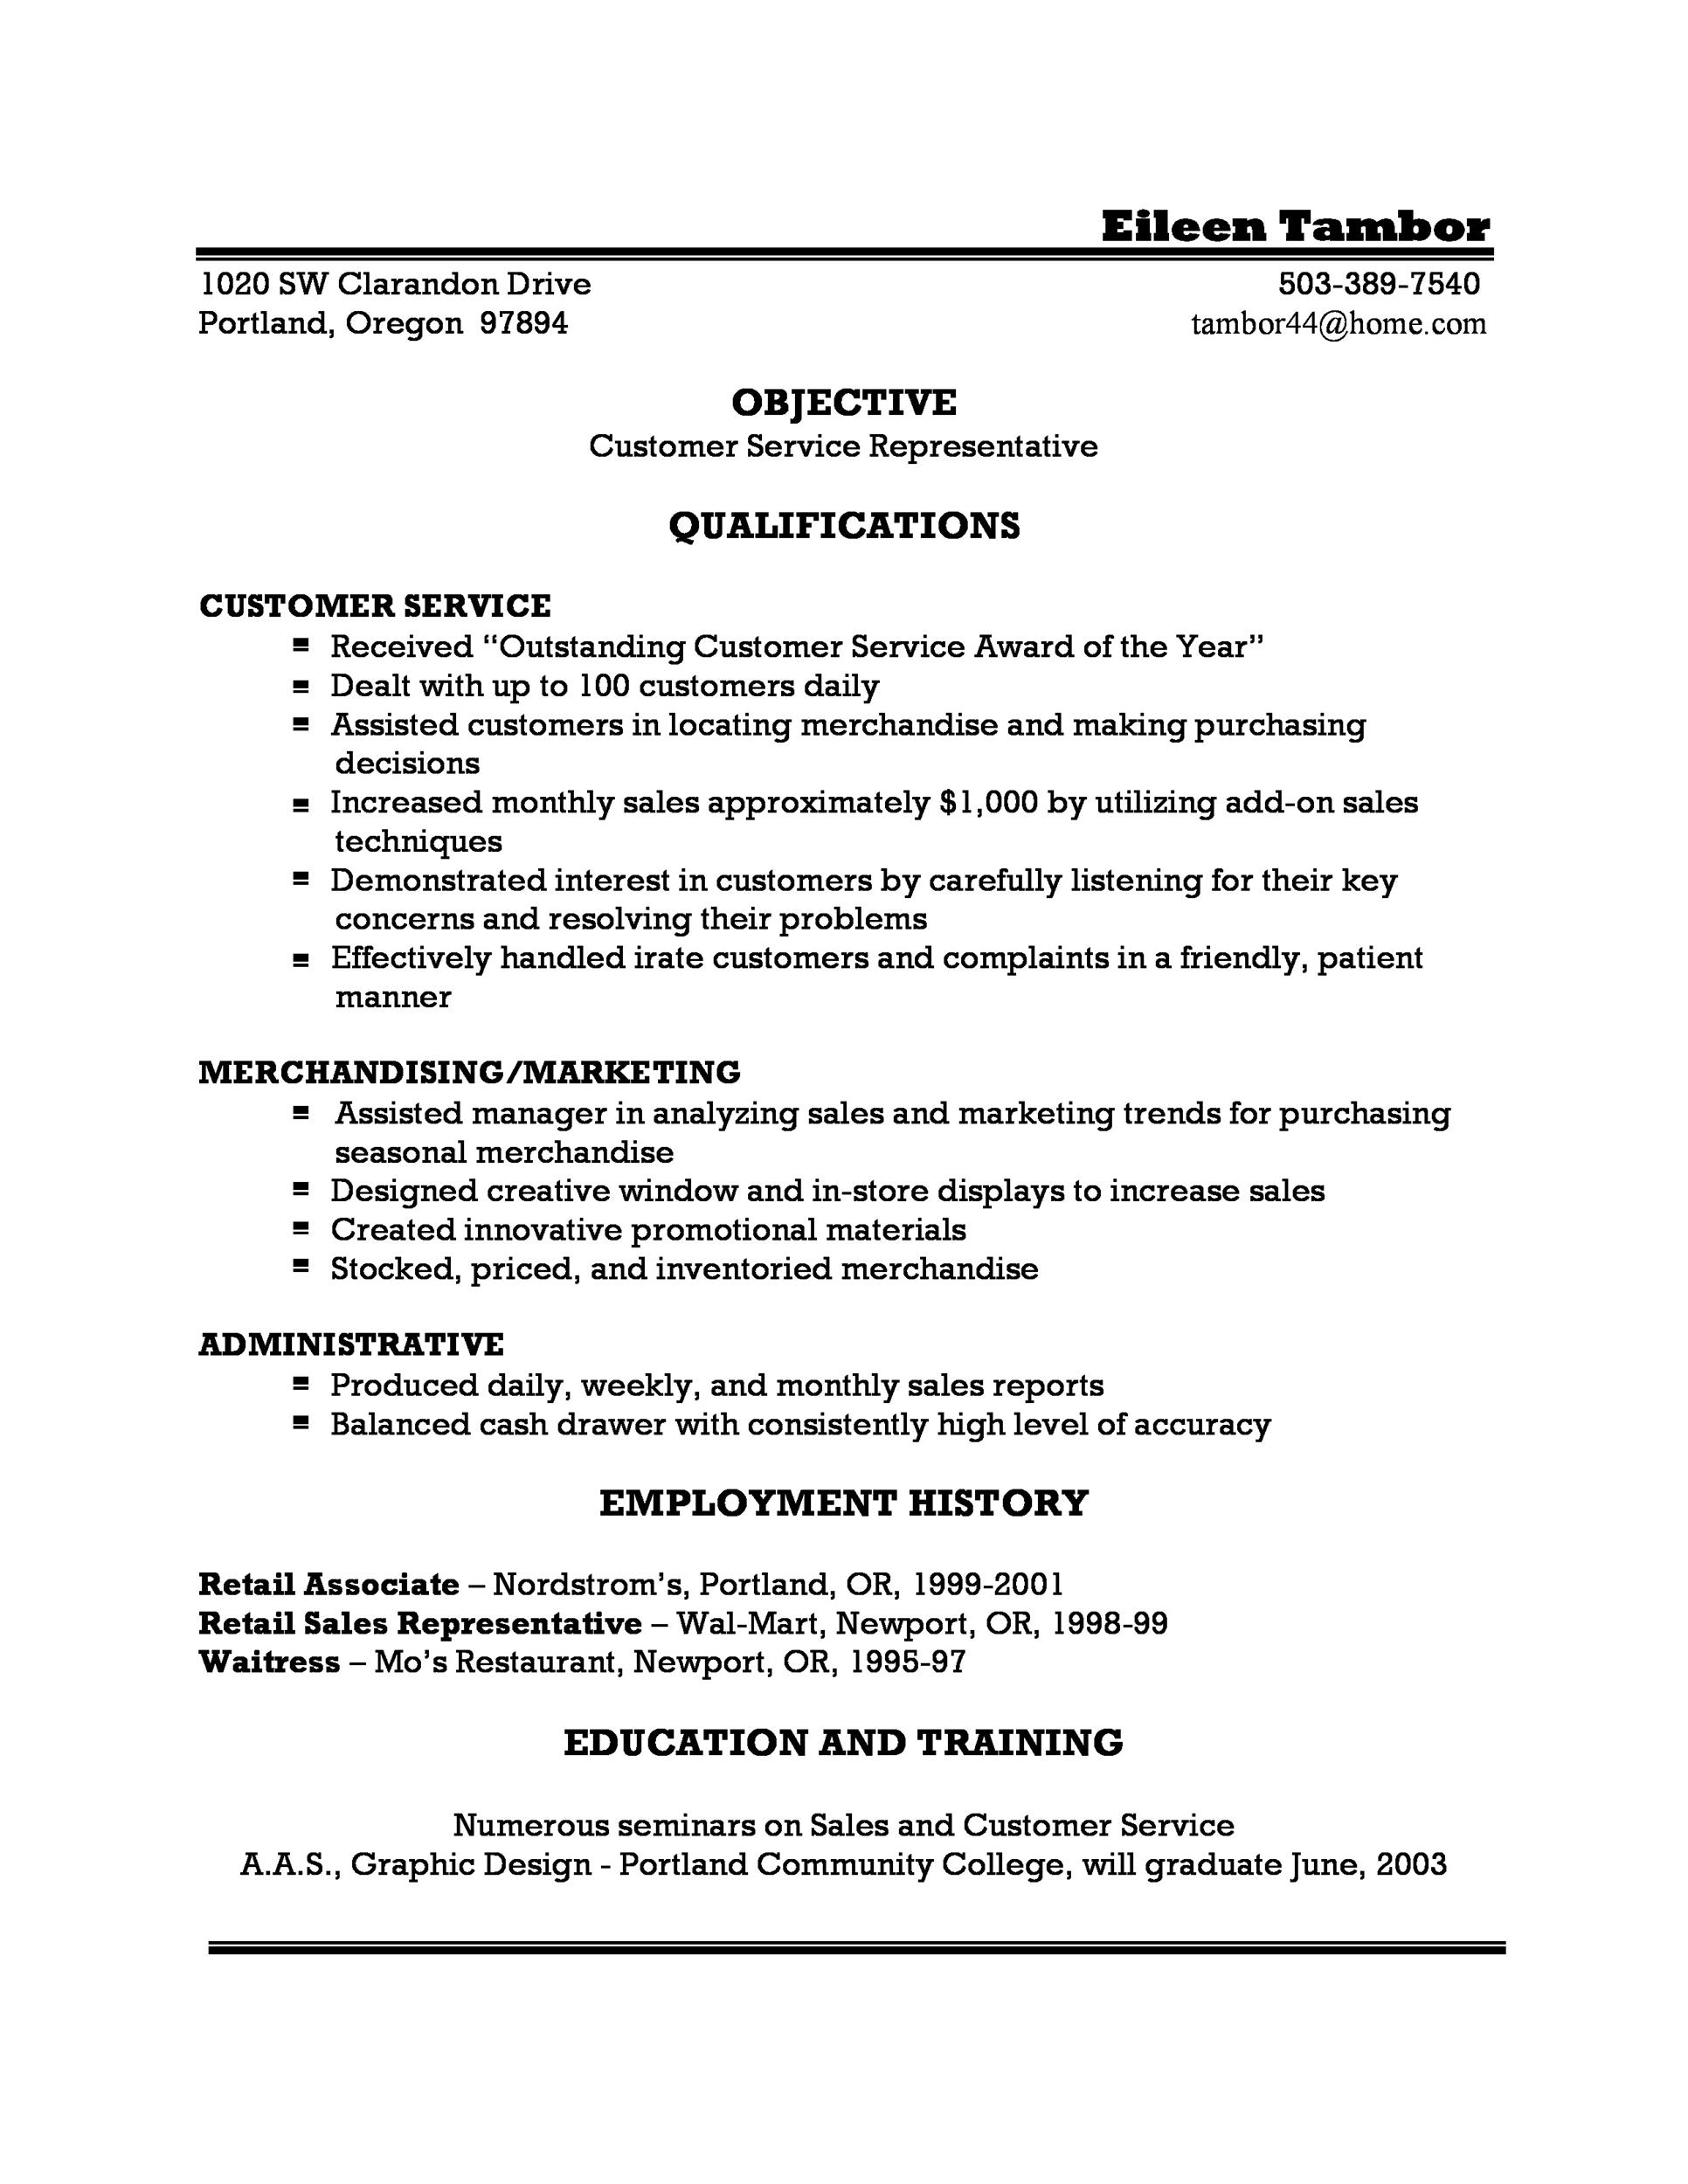 Technical Resume Service  BesikEightyCo